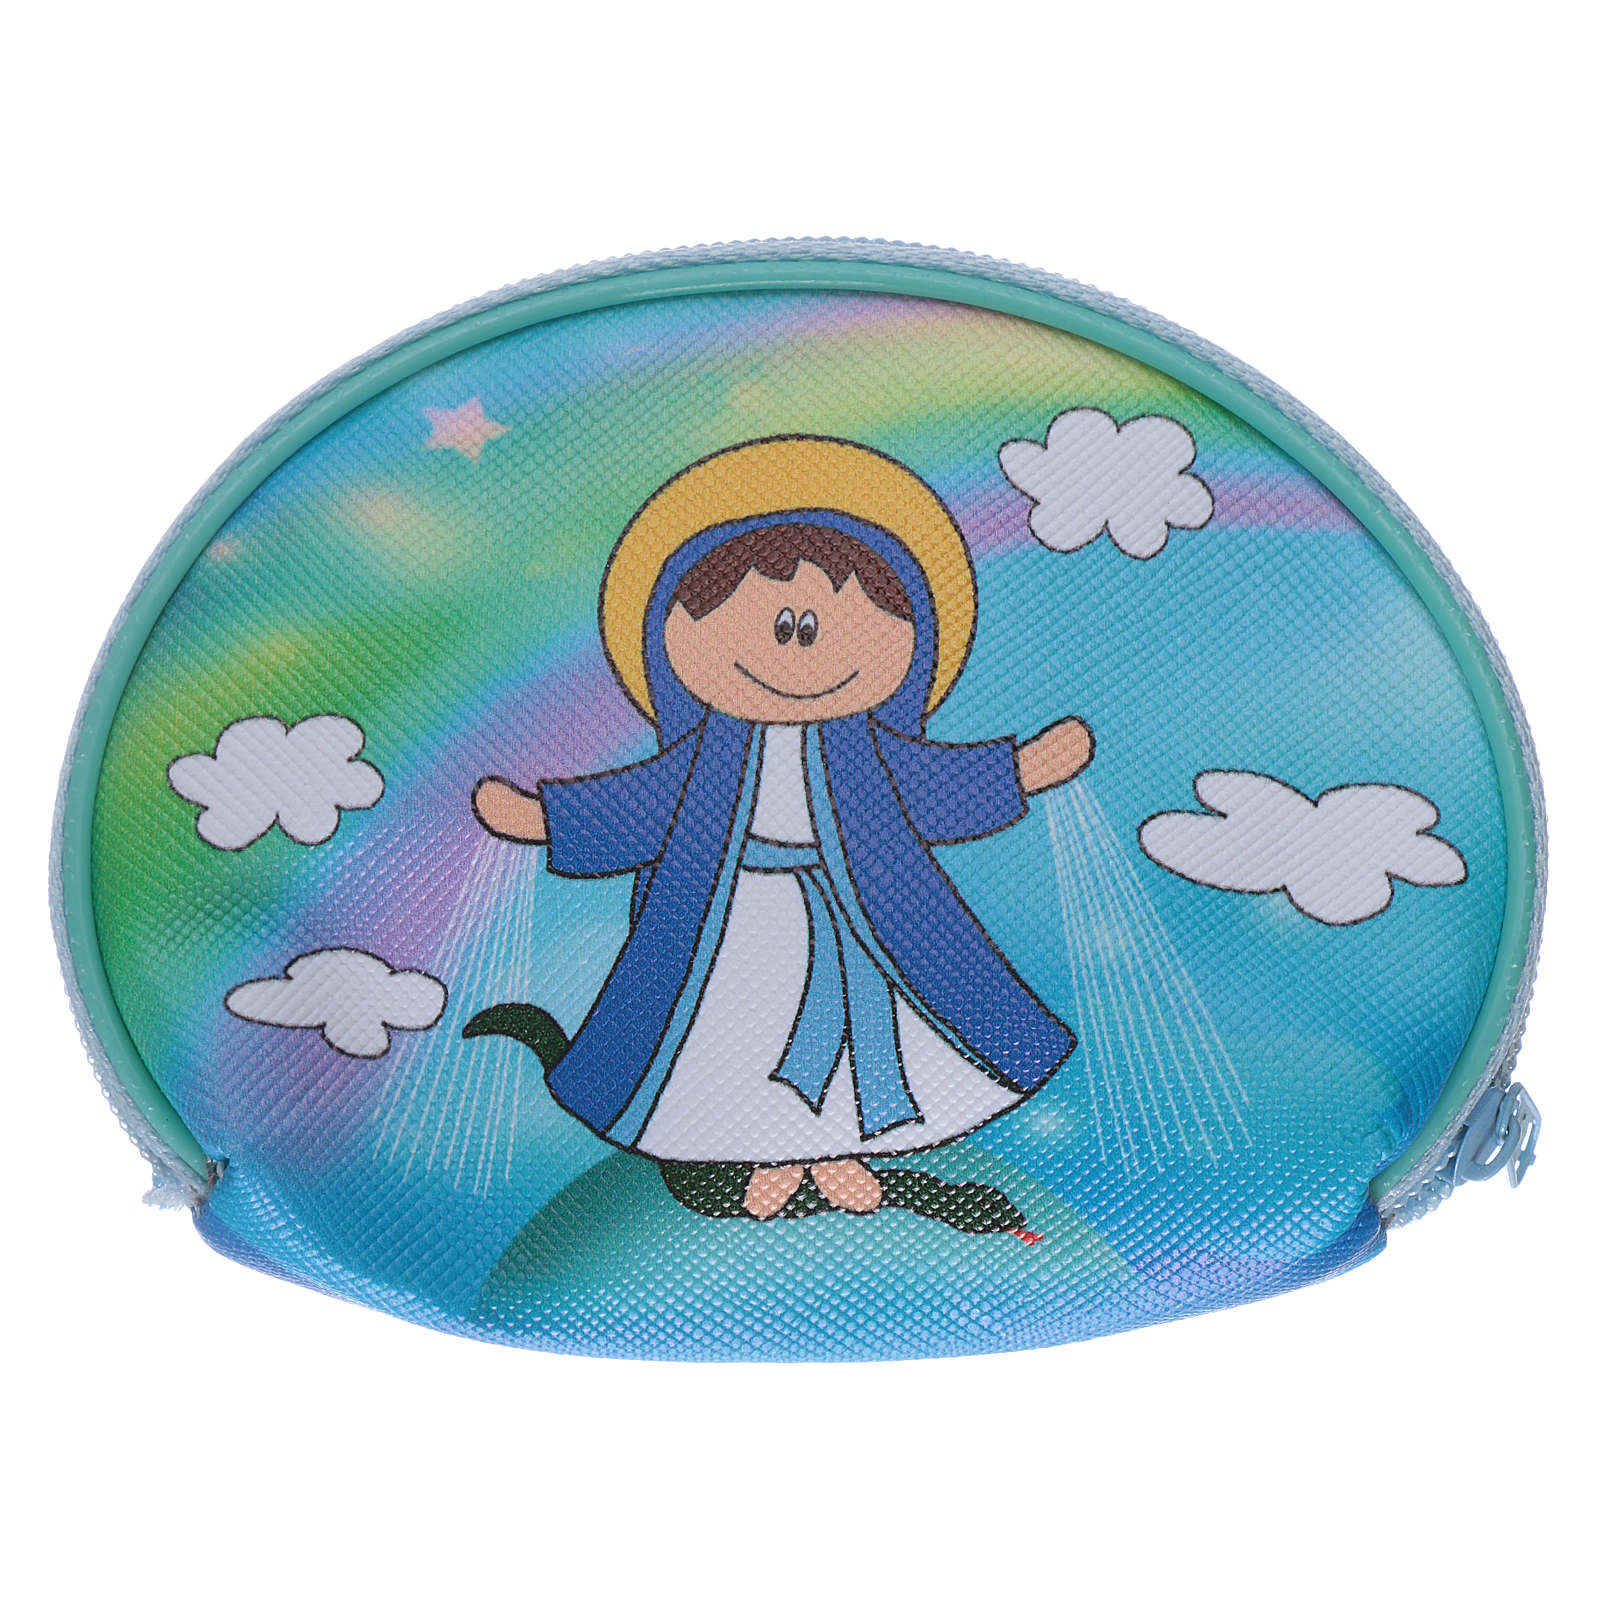 Purse rosary holder 10x8 cm with Our Lady of Miracles image 4